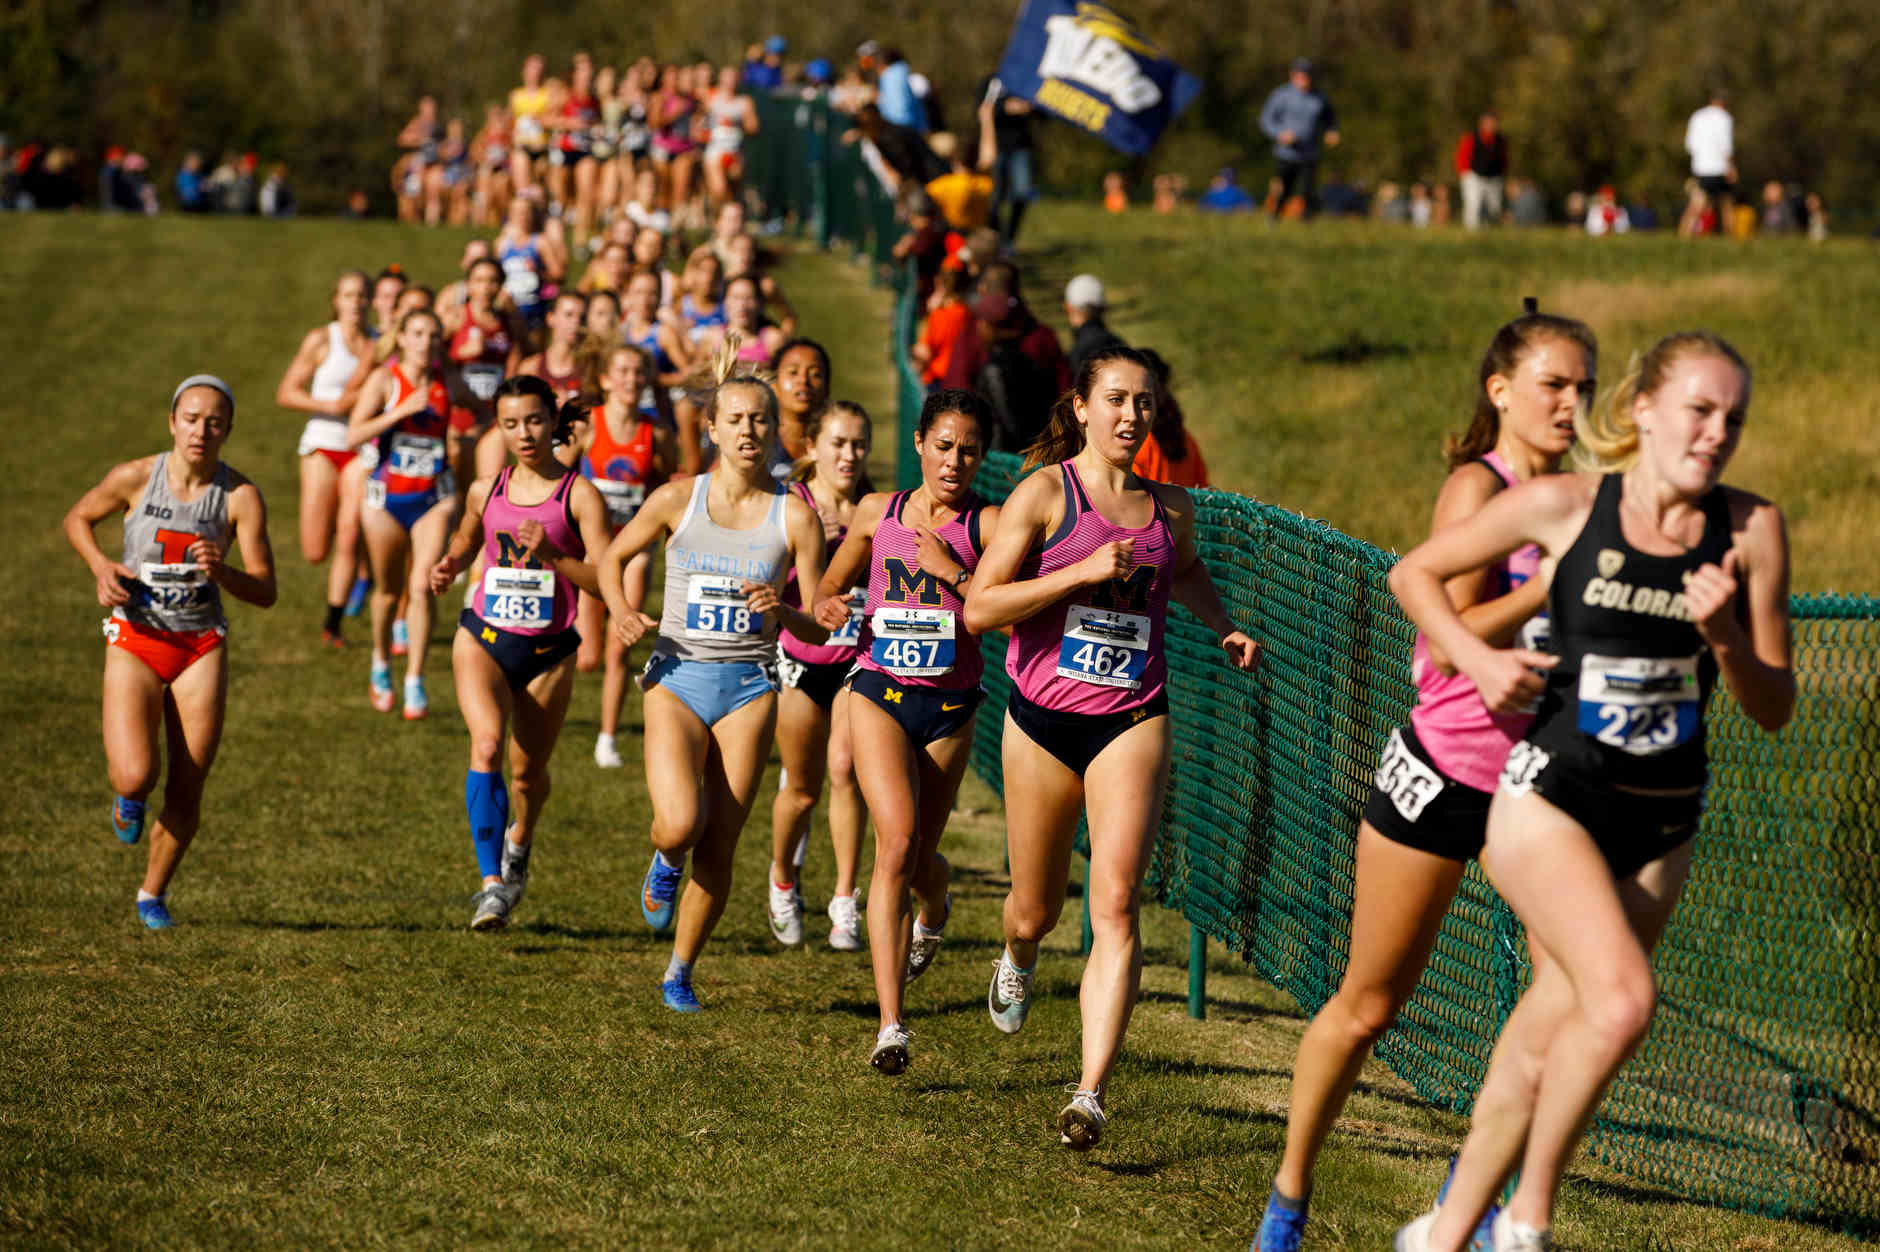 Michigan's Camille Davre (462), Jena Metwalli (467) and Micaela DeGenero (463) compete during the Indiana State Pre-National Cross Country Invitational in Terre Haute, Indiana on Saturday, Oct. 19, 2019. (Photo by James Brosher)